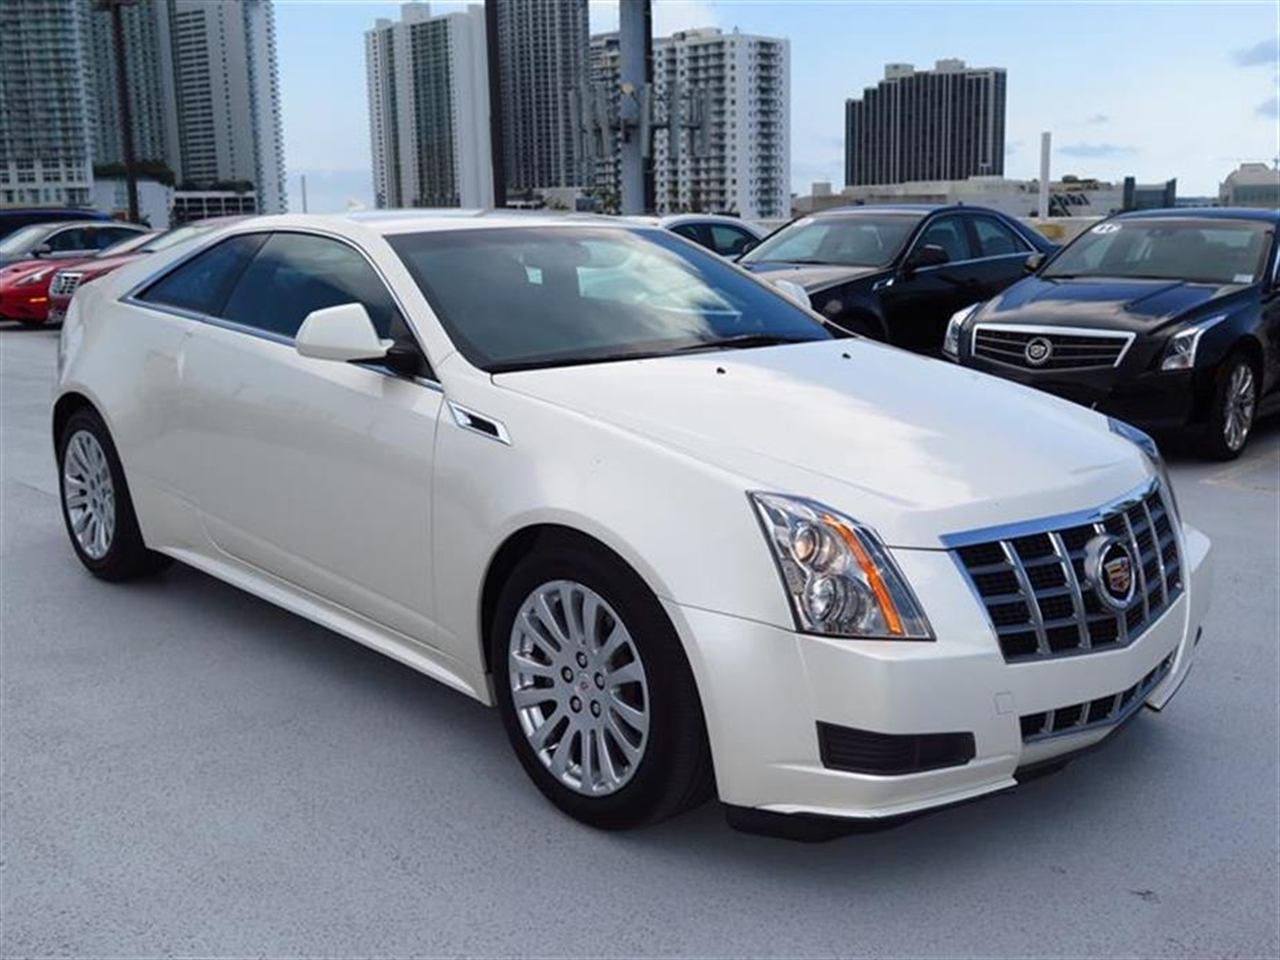 2012 CADILLAC CTS 2dr Cpe RWD 14968 miles Armrest front center Climate control dual-zone autom